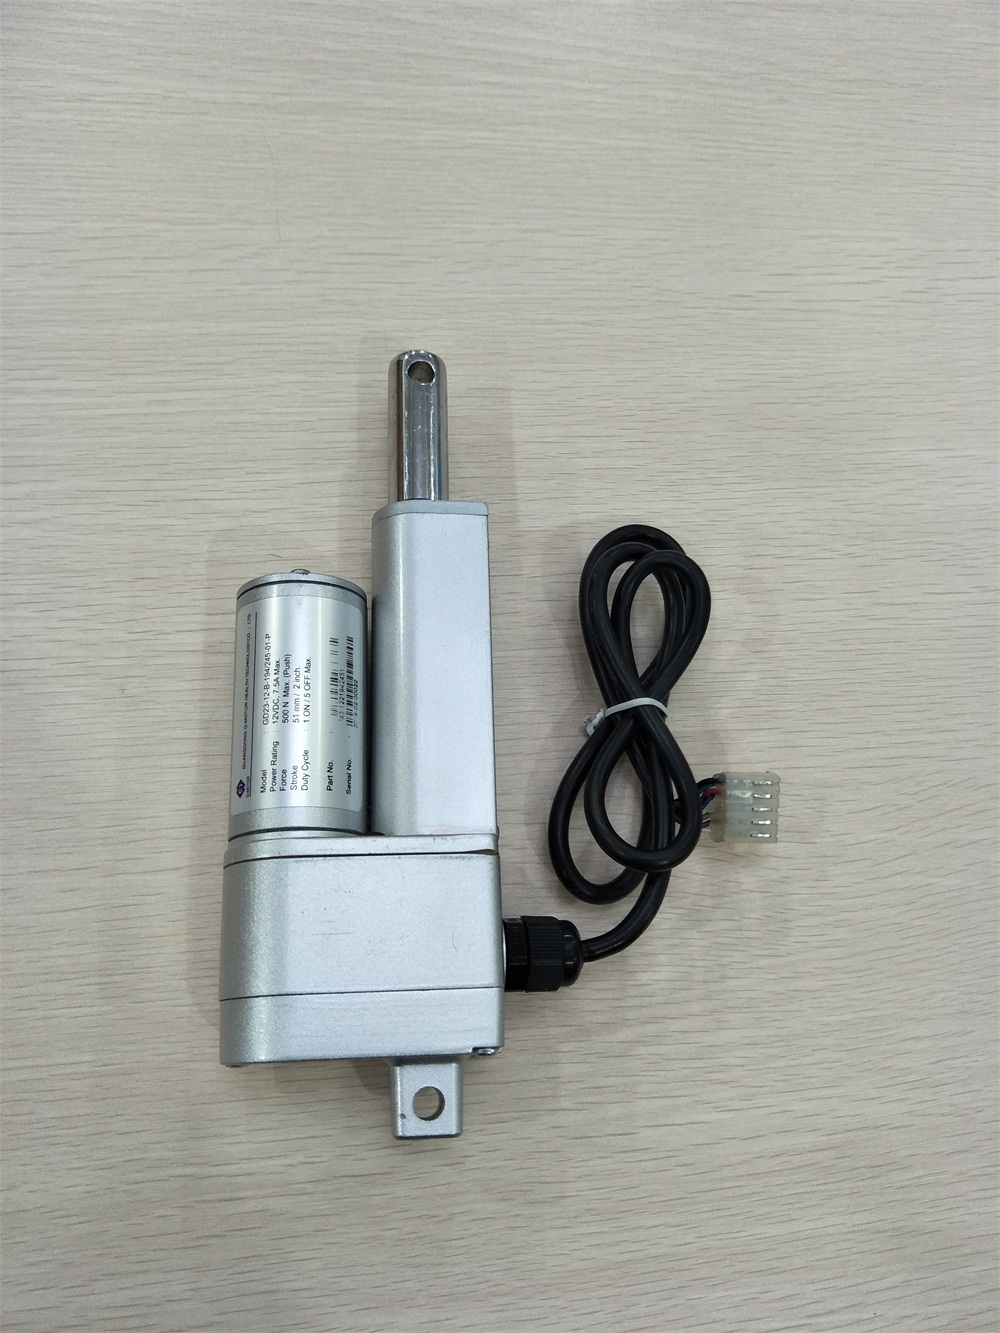 linear actuator with sensor (7)